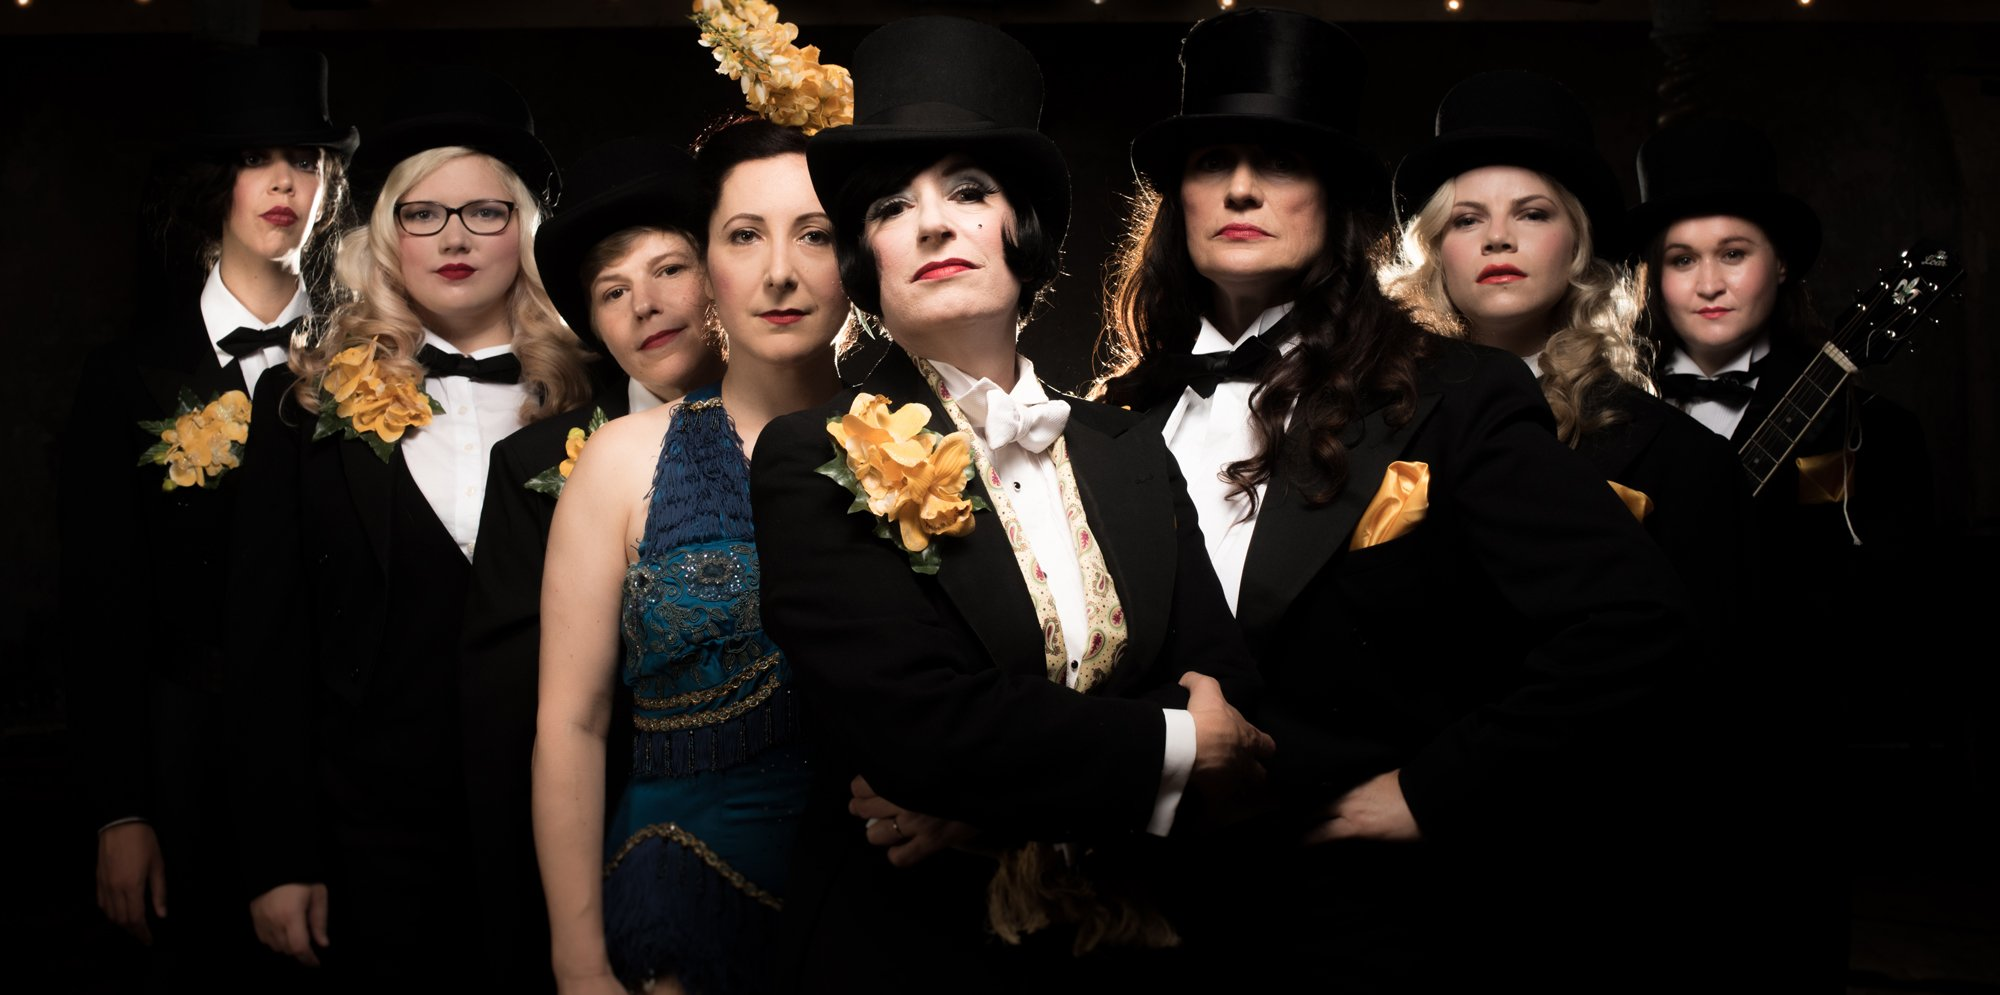 A group of women in top hats and tails. There is also a woman in a blue vintage showgirl's outfit with a yellow feather in her hair